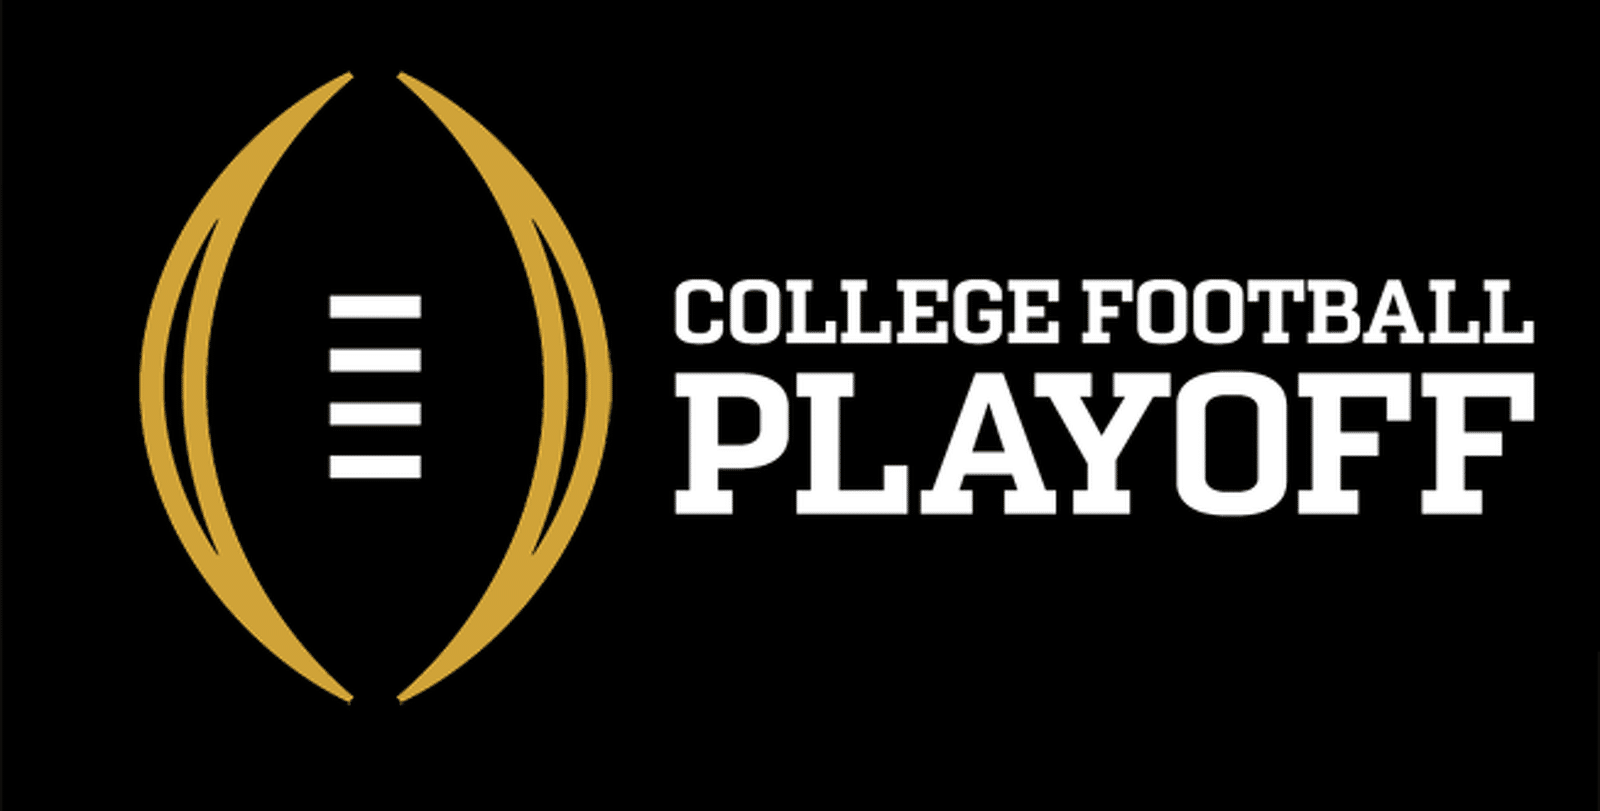 Odds To Make The College Football Playoffs This Season?